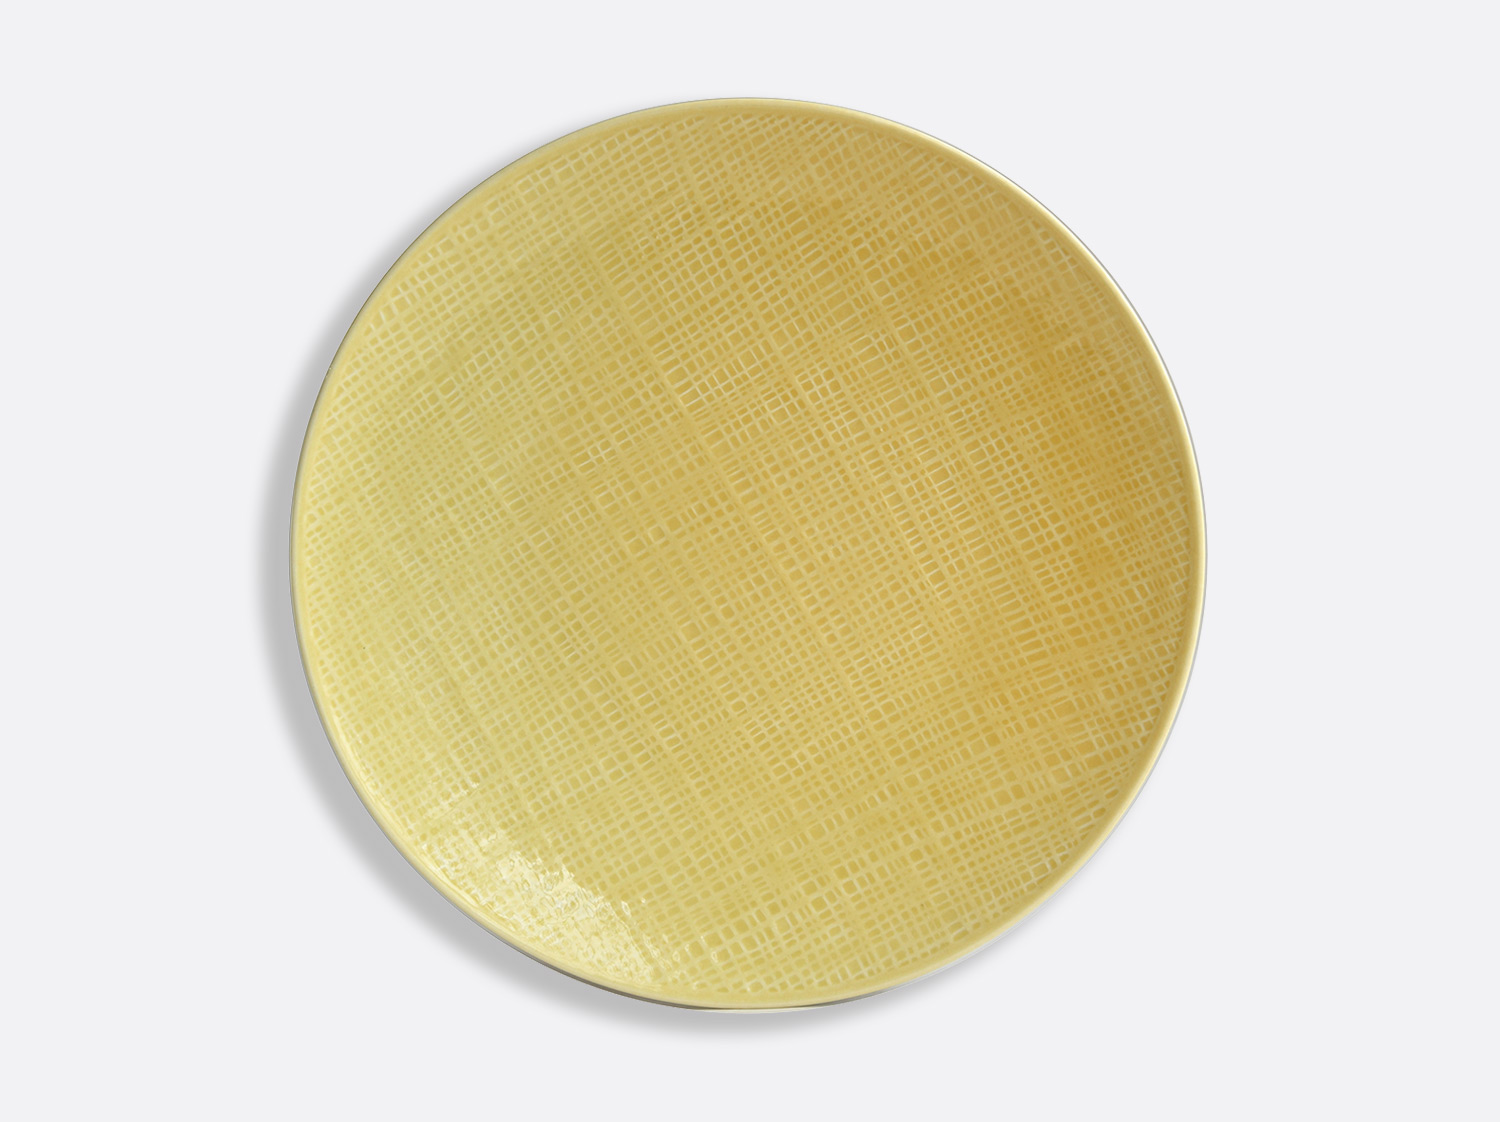 "China Jaune Paille plate 11.6"" of the collection ORGANZA JAUNE PAILLE 